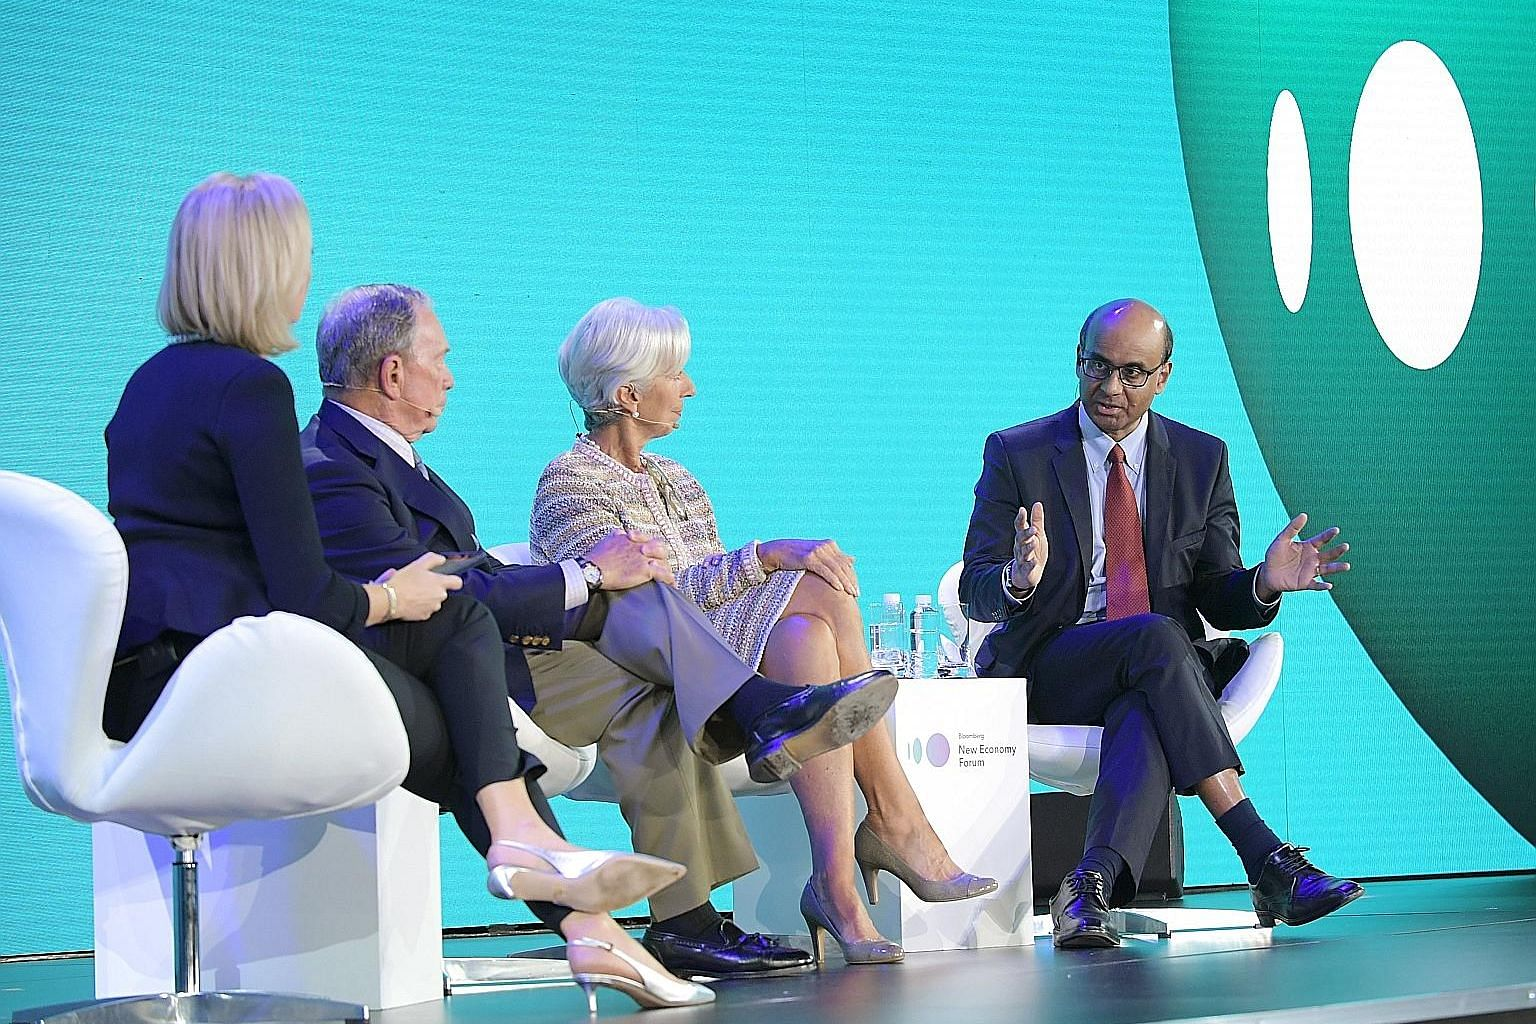 Deputy Prime Minister Tharman Shanmugaratnam sharing his views at a panel discussion yesterday at the Bloomberg New Economy Forum. With him are (from left) moderator and Bloomberg TV editor-at-large Francine Lacqua, former New York mayor Michael Bloo